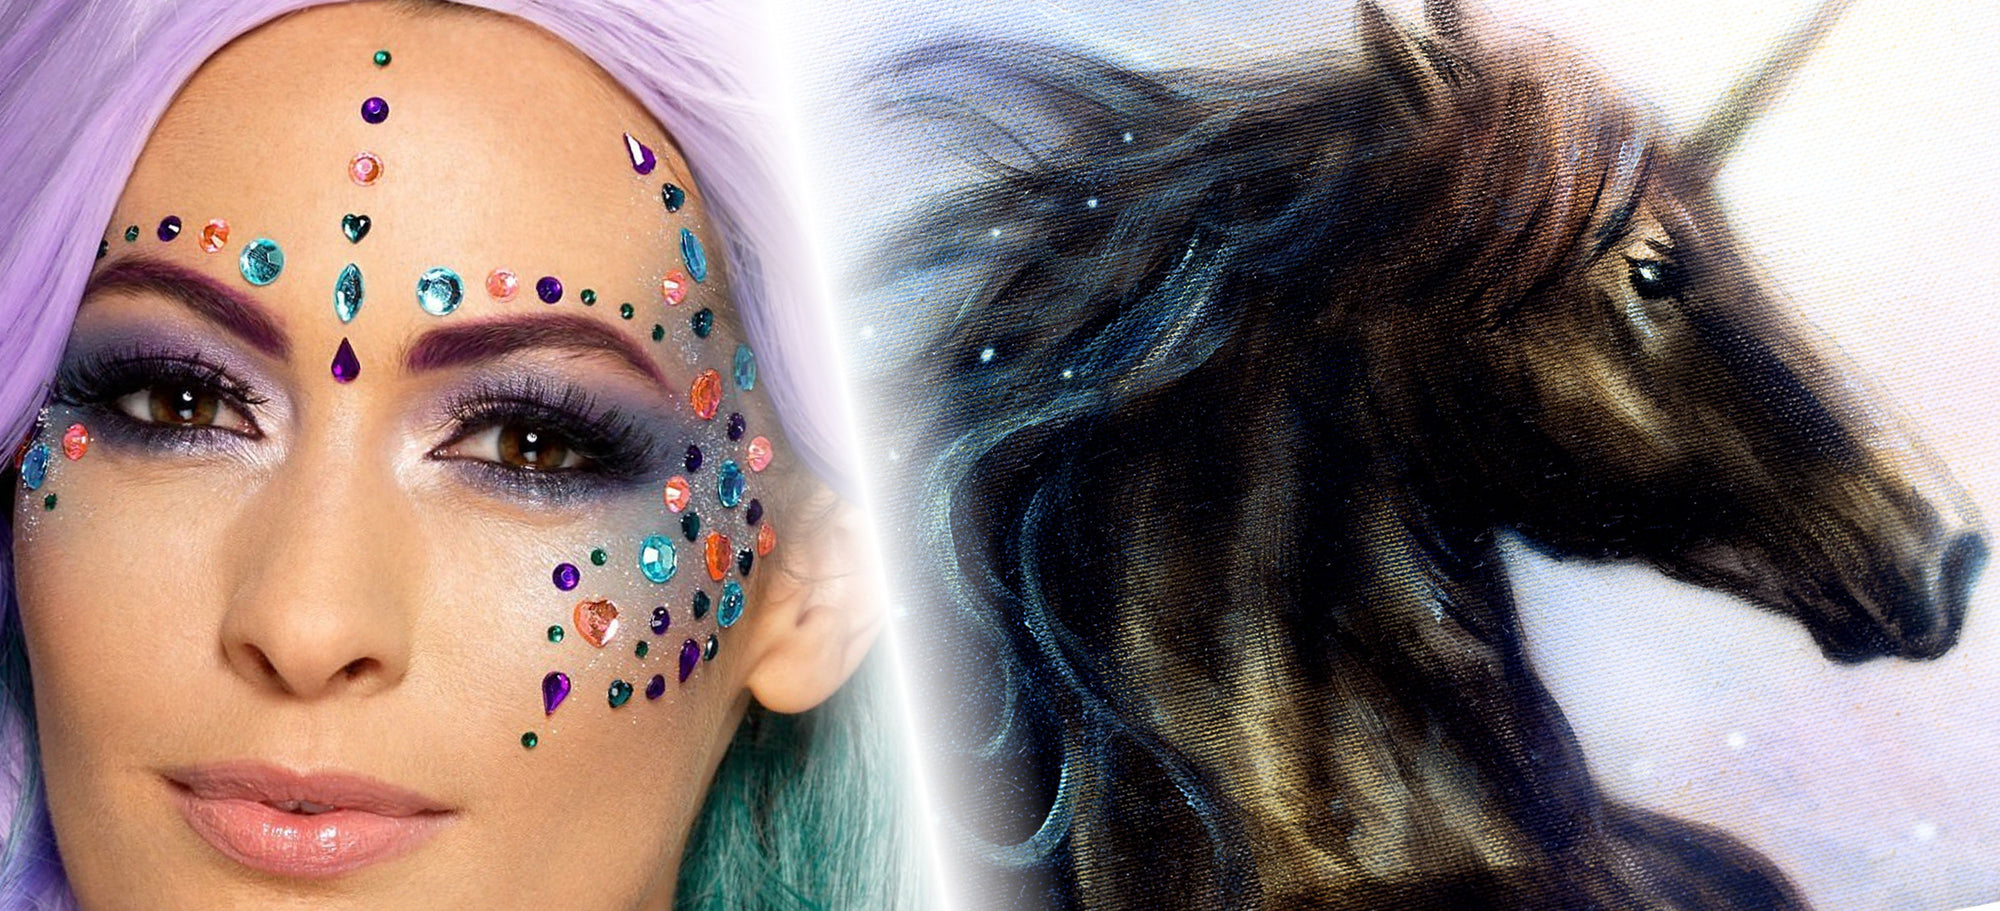 Creating The Ultimate Fantasy Makeup Look: Unicorns